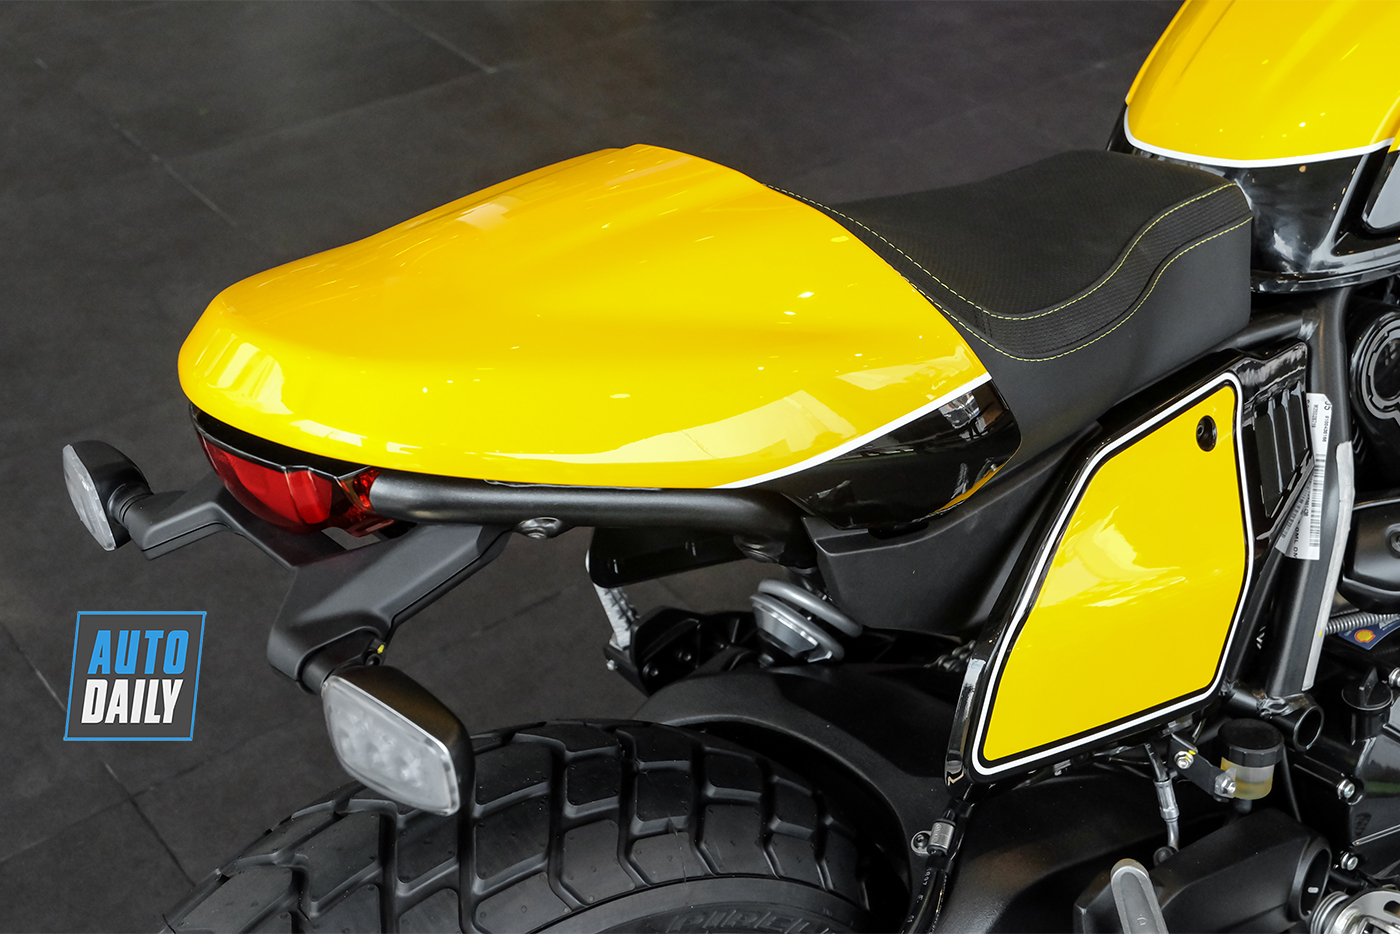 ducati-scrambler-full-throttle-2019-14.jpg